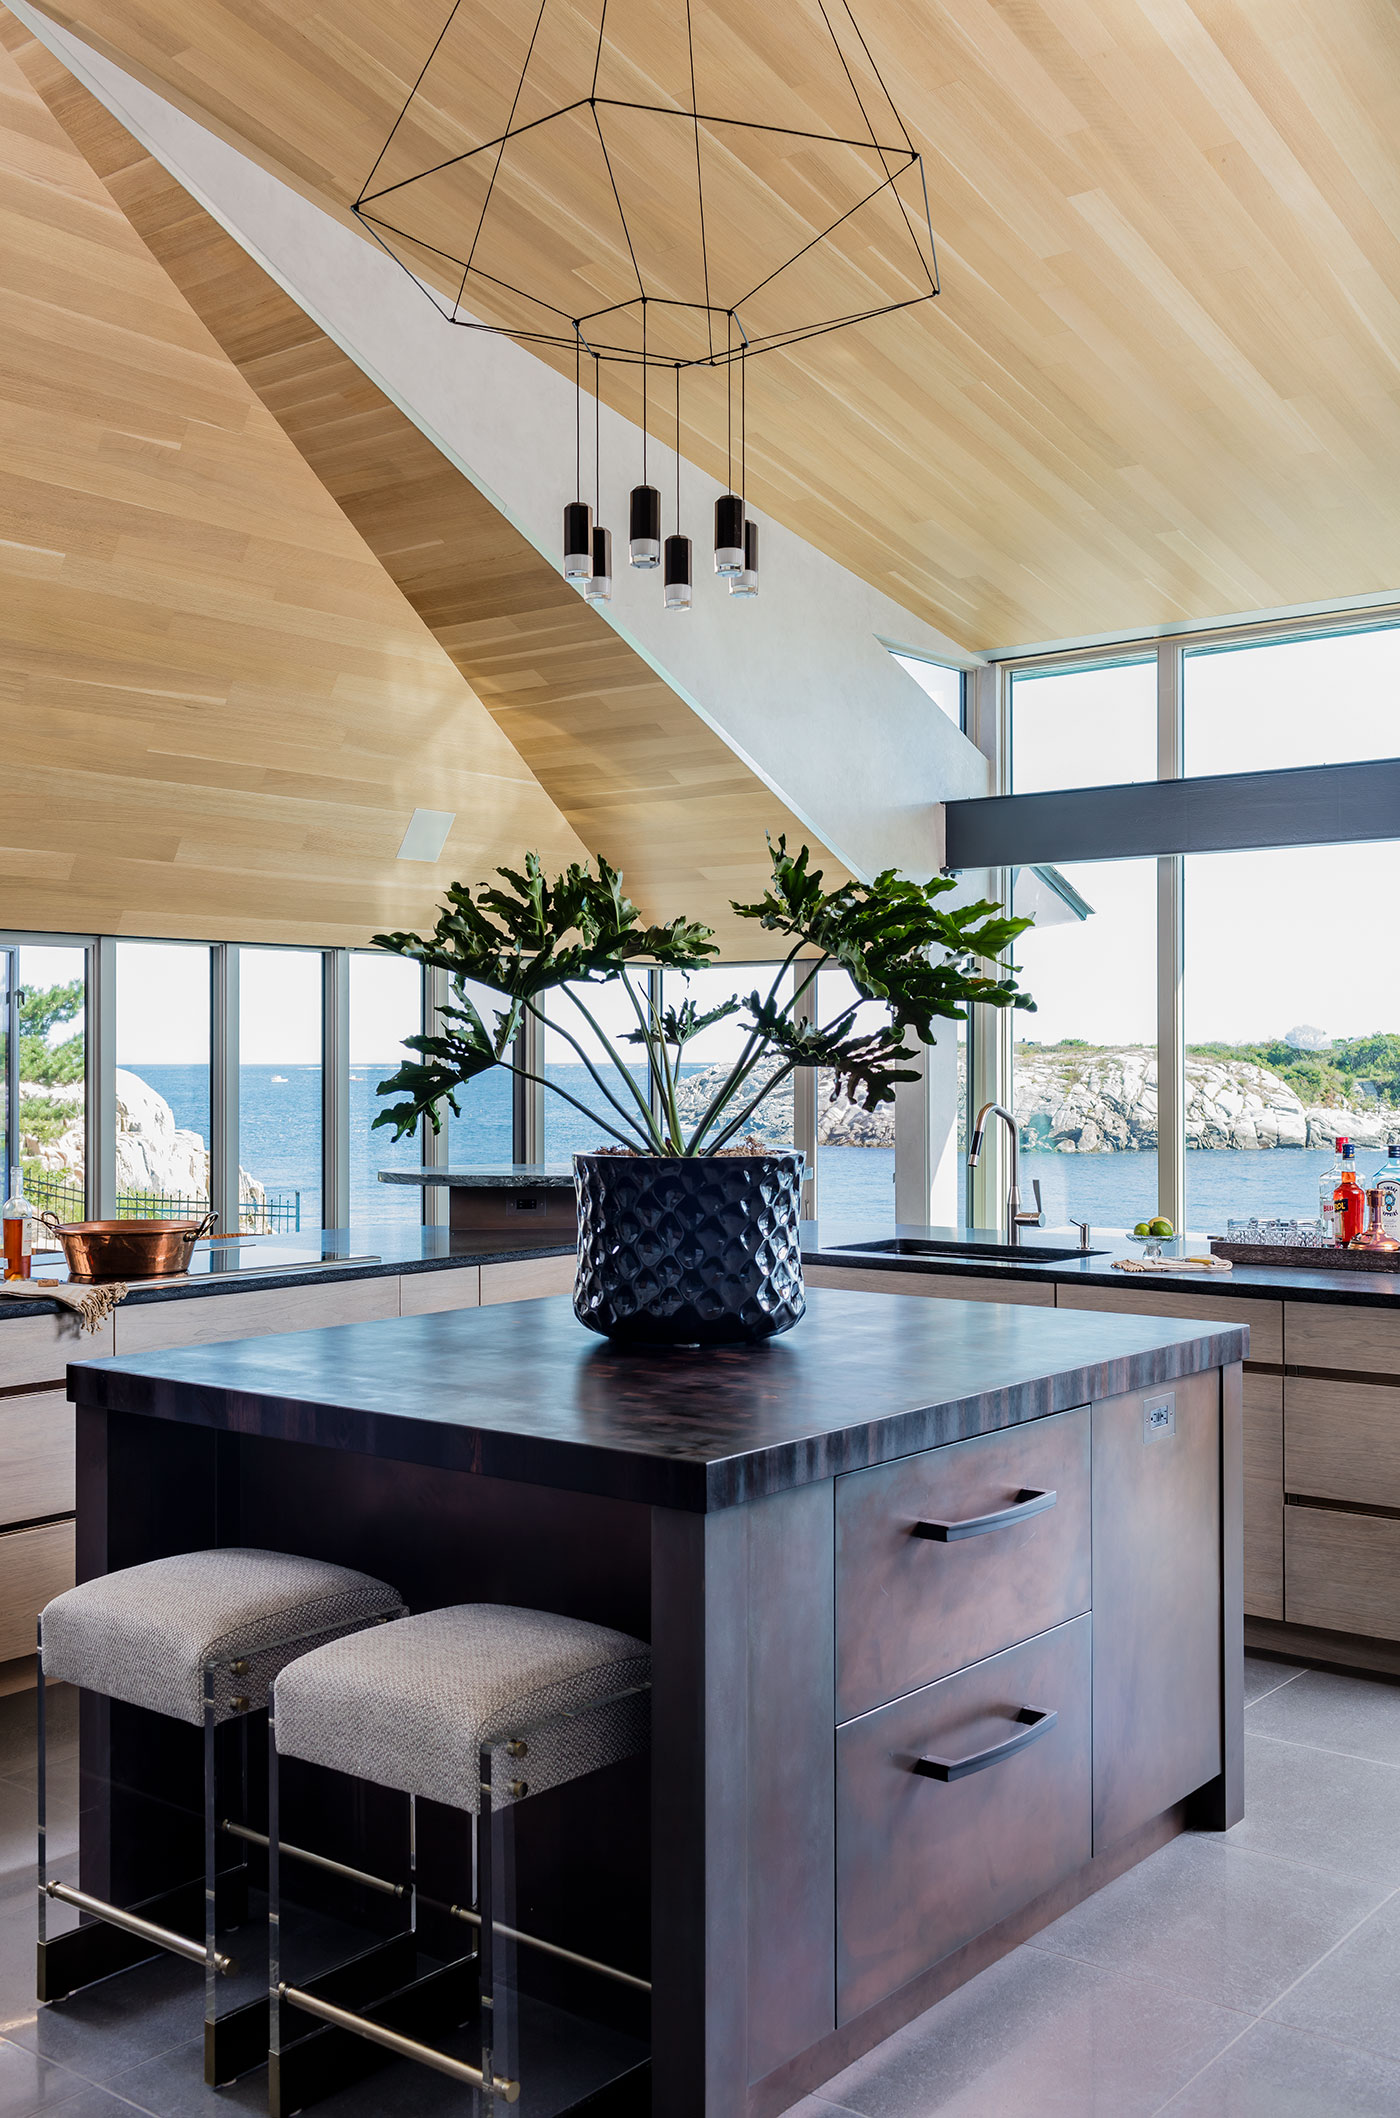 Custom waterside kitchen design by Venegas & Company